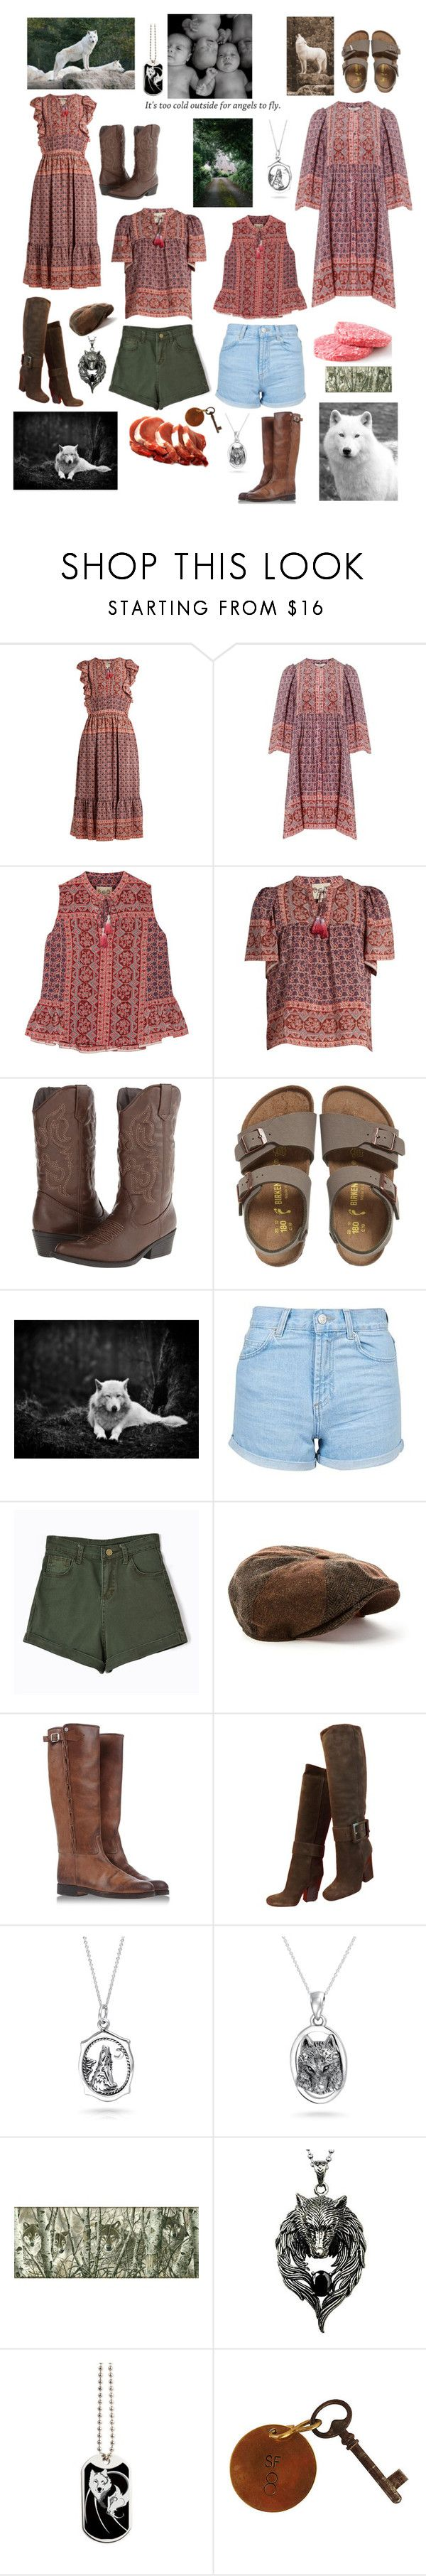 """lulu,Lena,Lonnie,liddy"" by nickeyg ❤ liked on Polyvore featuring Sea, New York, Madden Girl, Birkenstock, National Geographic Home, Topshop, Chicnova Fashion, Gibson, Golden Goose, Gucci and Bling Jewelry"